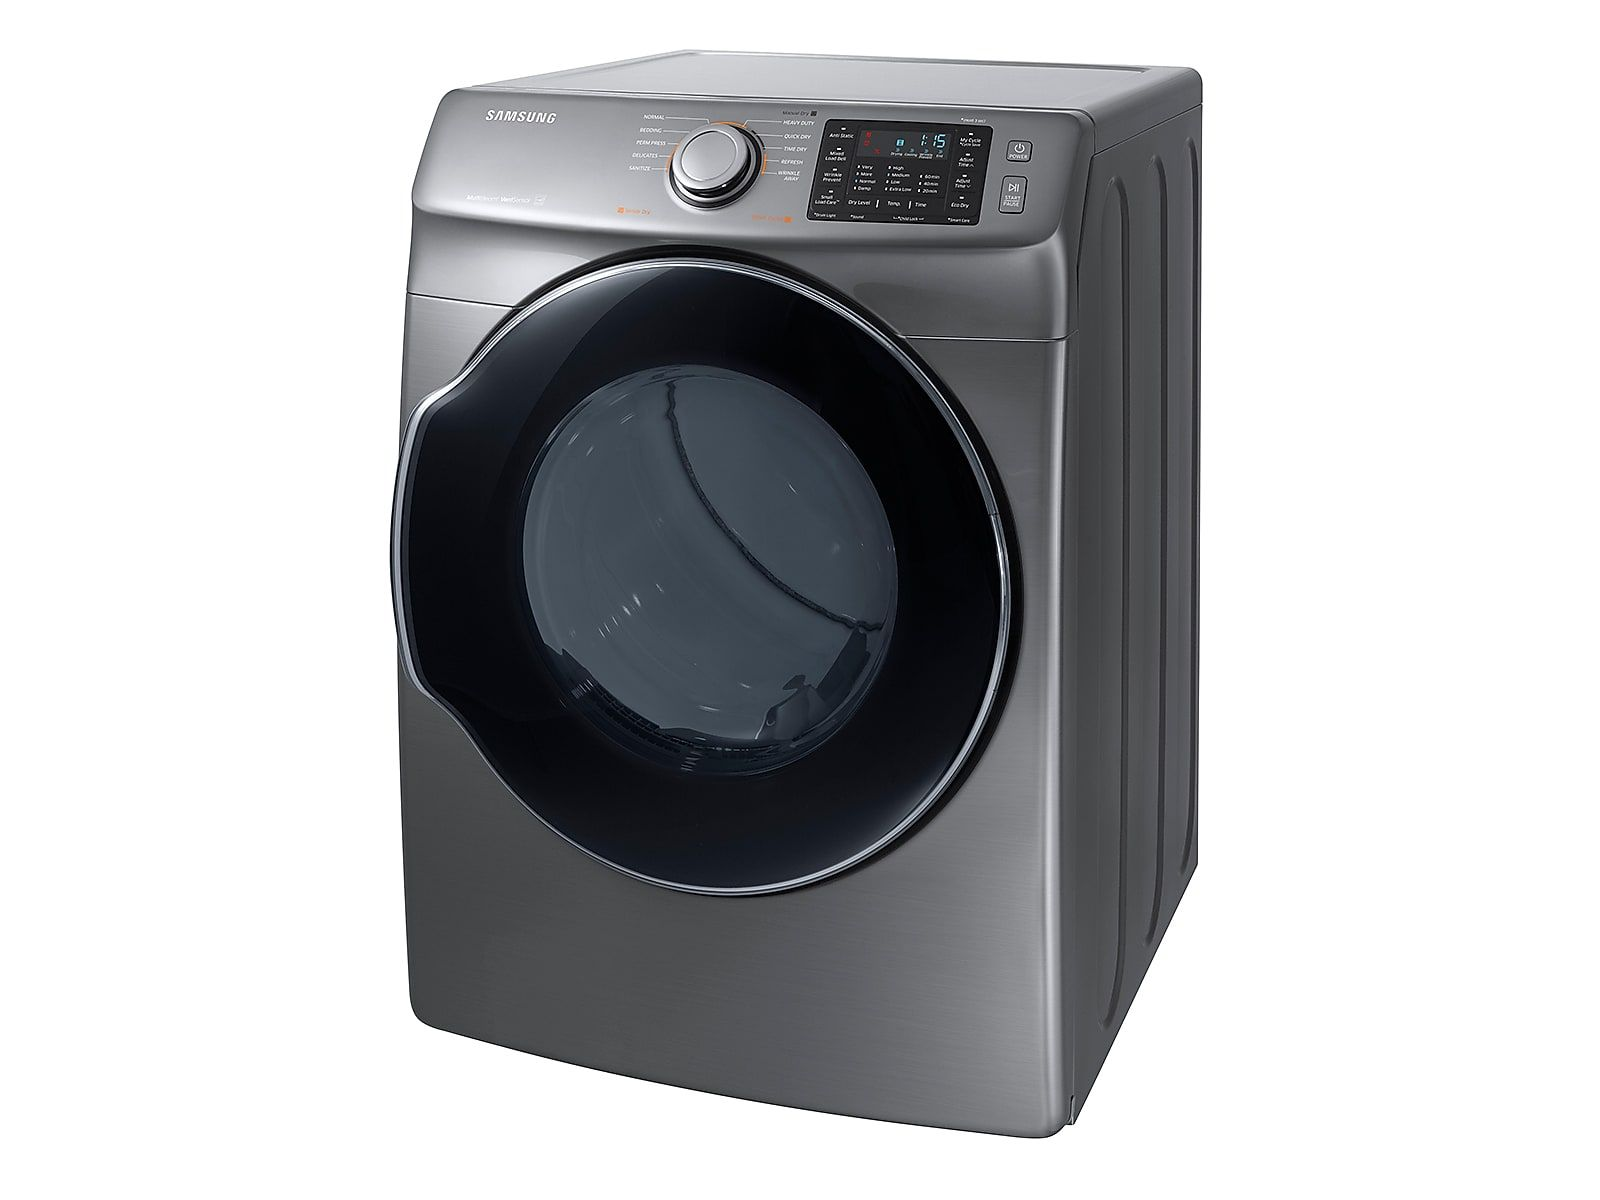 Samsung Dv5500 7 4 Cu Ft Gas Dryer White In 2019 Products Gas Dryer Dryer Washer Dryer